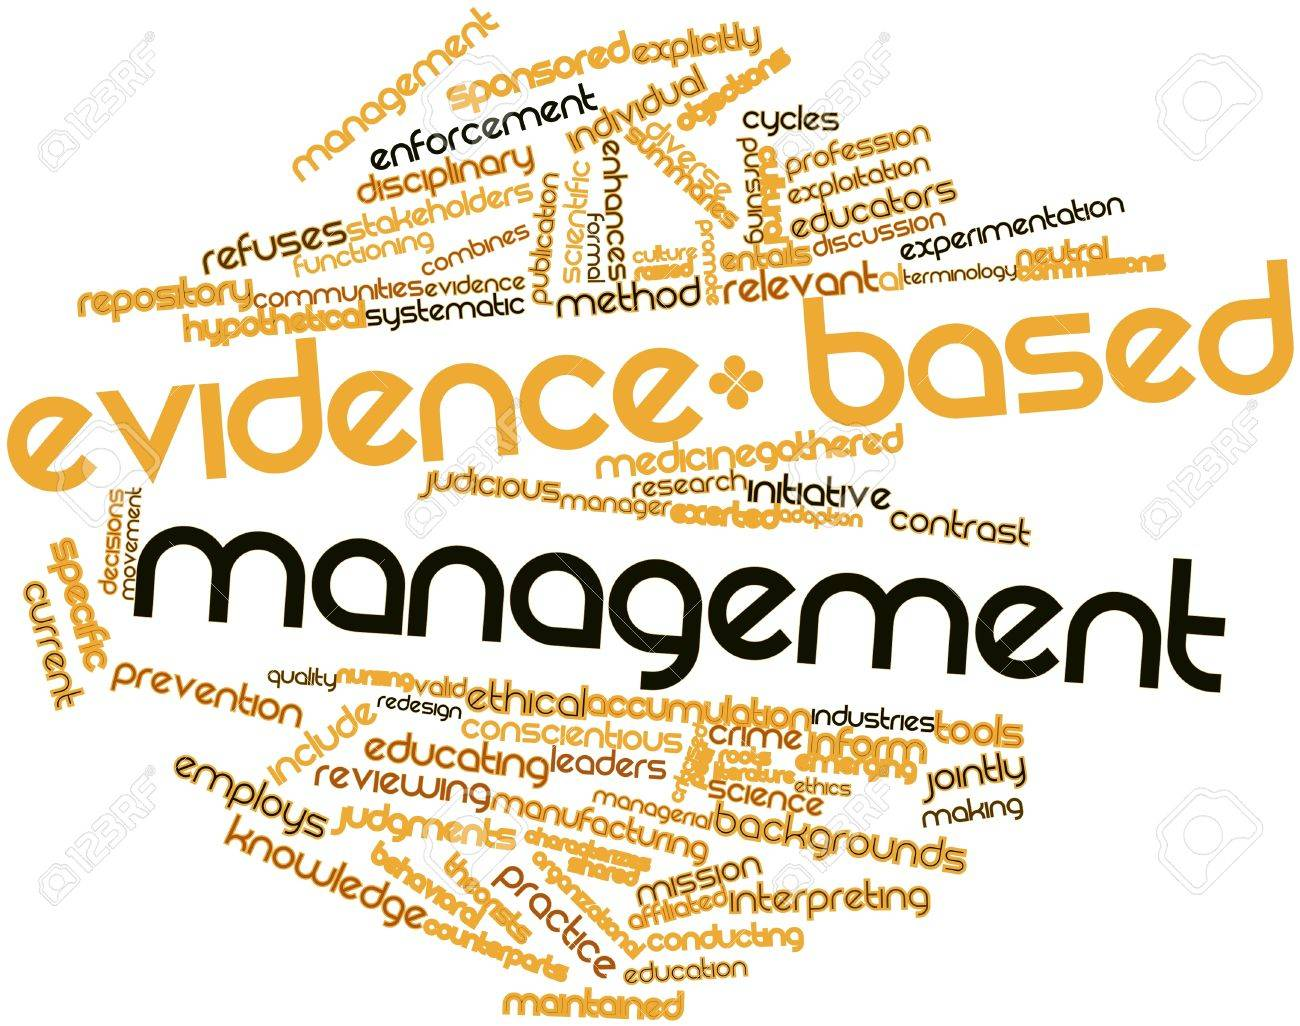 Cloud for evidence-based management